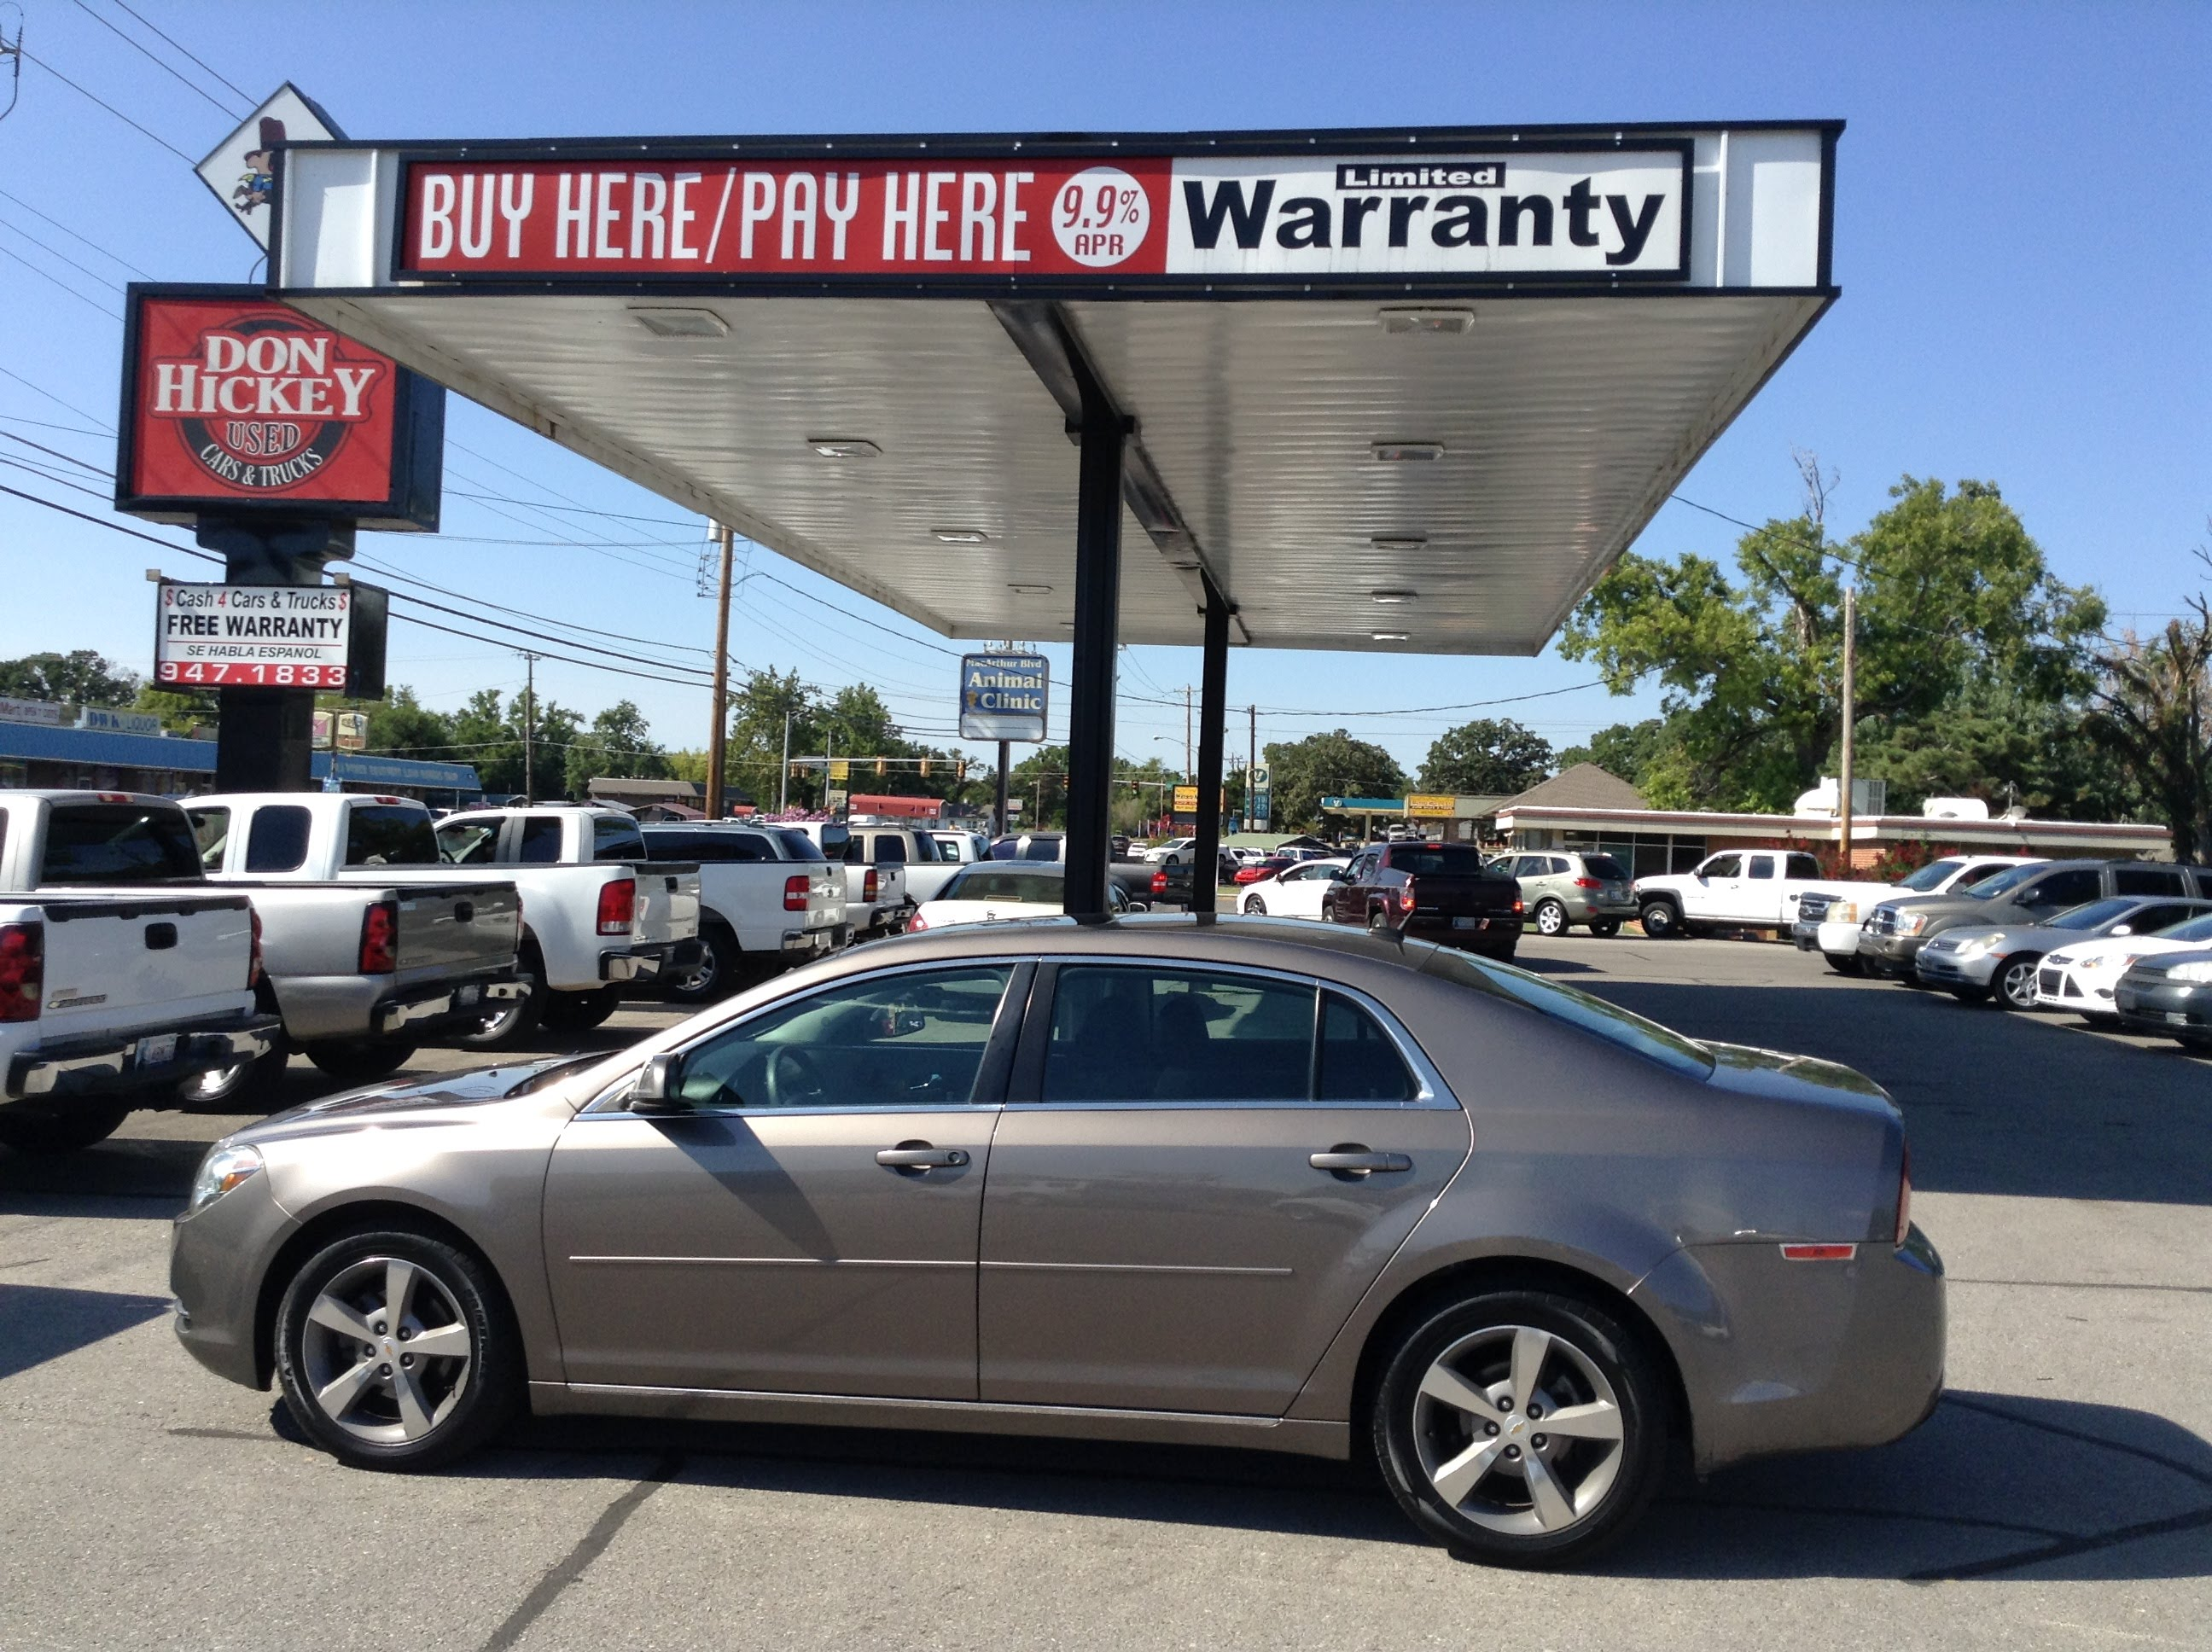 used cars okc for sale 947 1833 subscribe for $1000 off 2011 chevy malibu